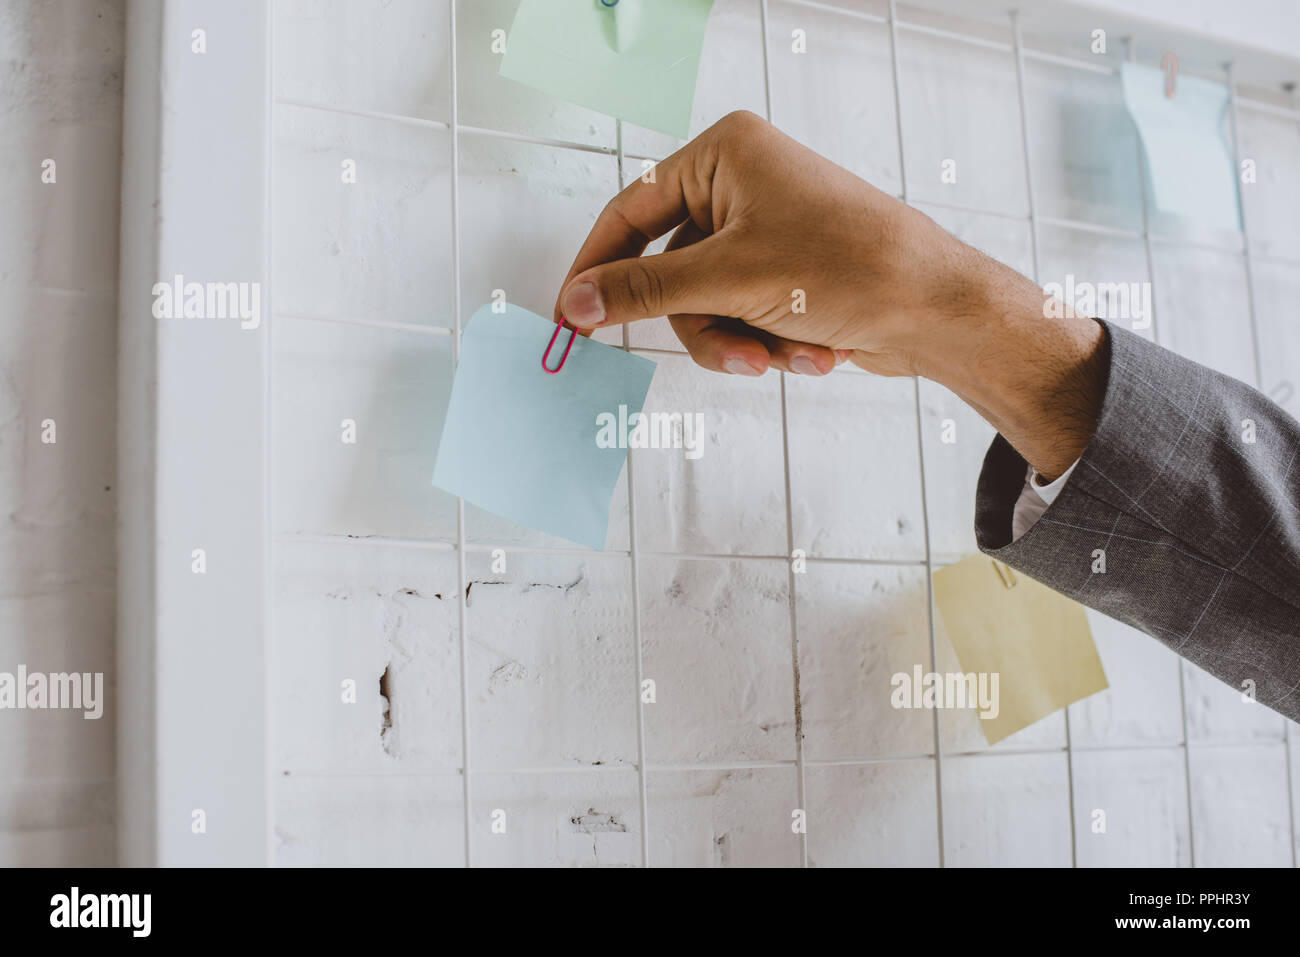 cropped image of businessman taking paper sticker from task board in office - Stock Image